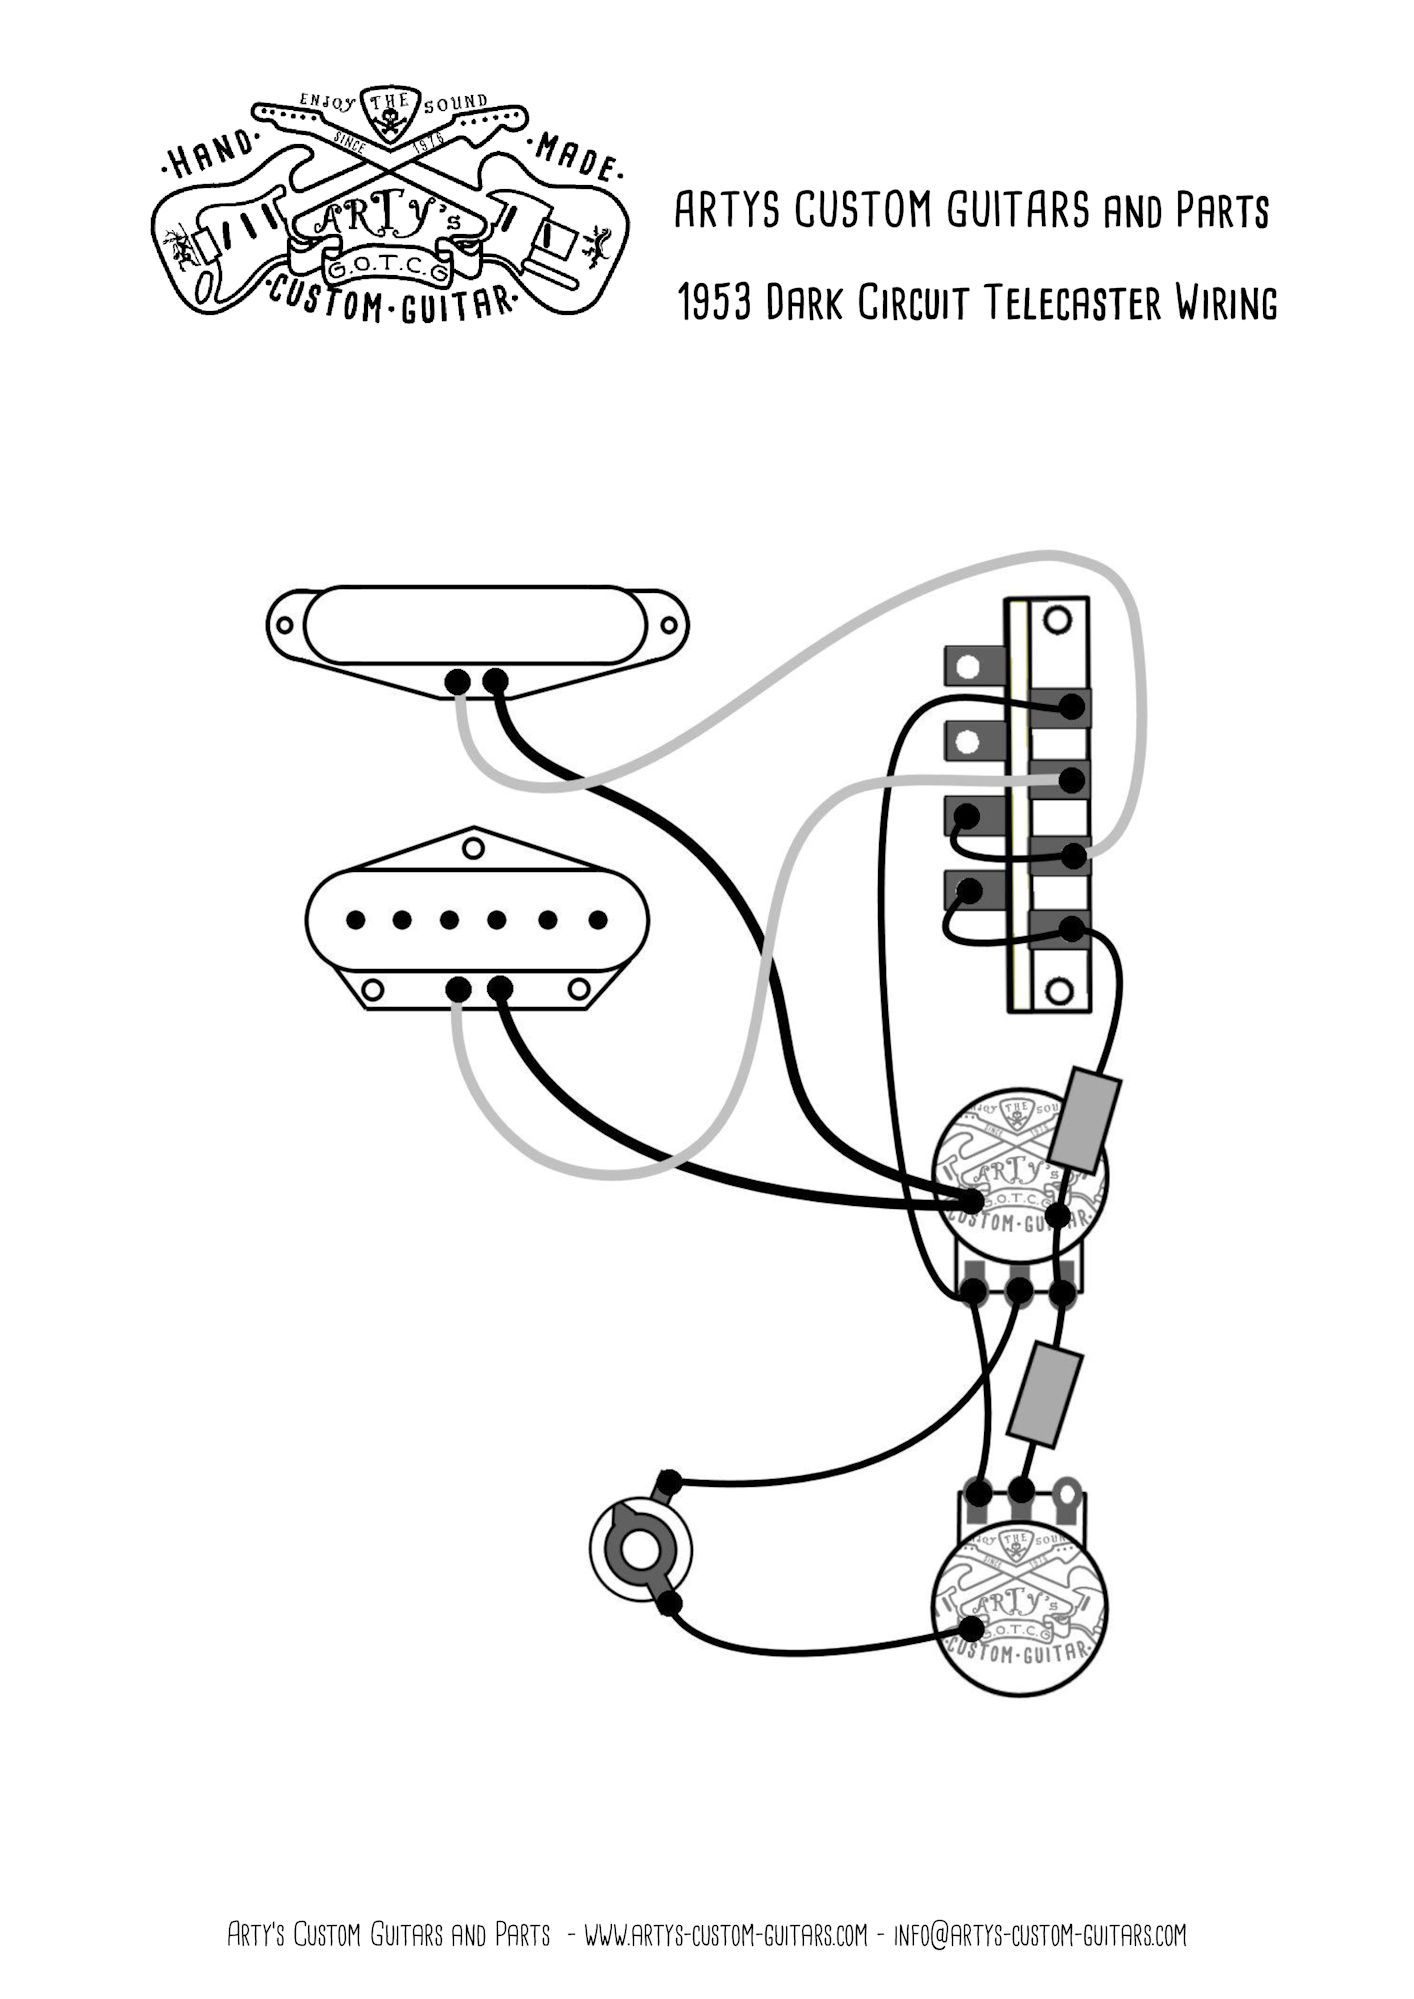 Artys Custom Guitars Wiring Diagram Dark Circuit 1953 Control Electric Guitar Plateplan Telecaster Assembly Harness Tele